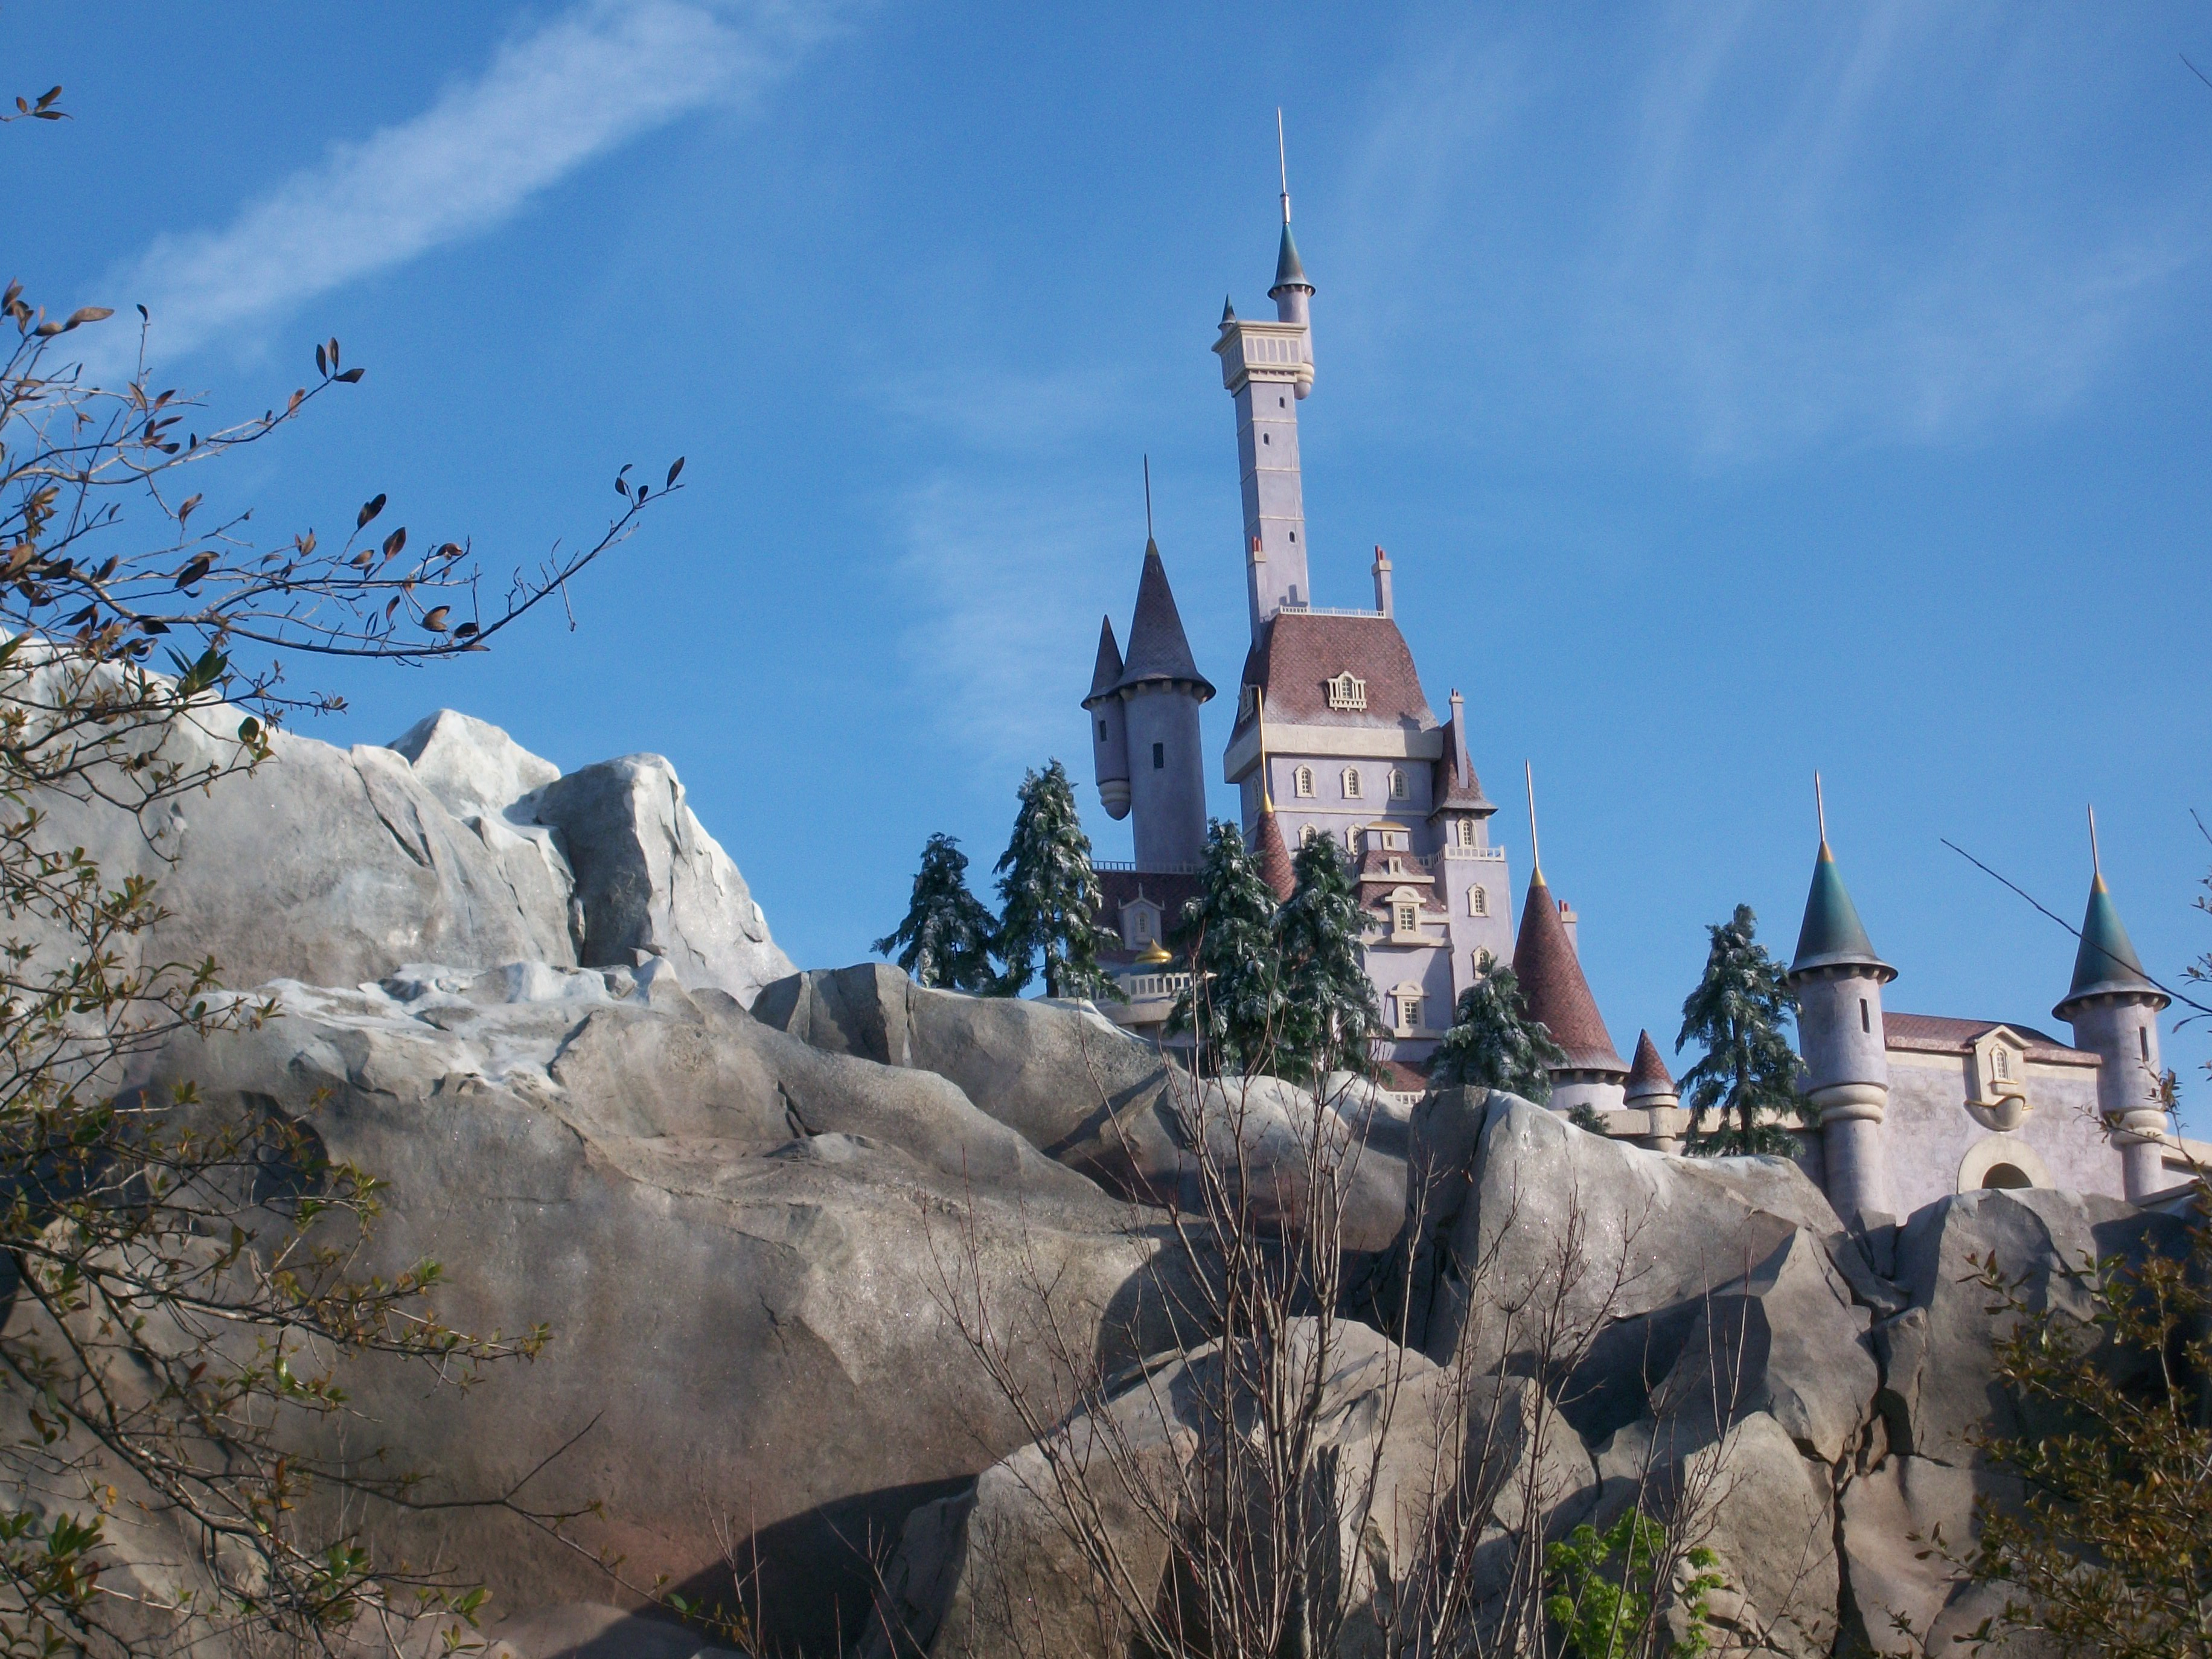 Wordless Wednesday: Another Disney Castle